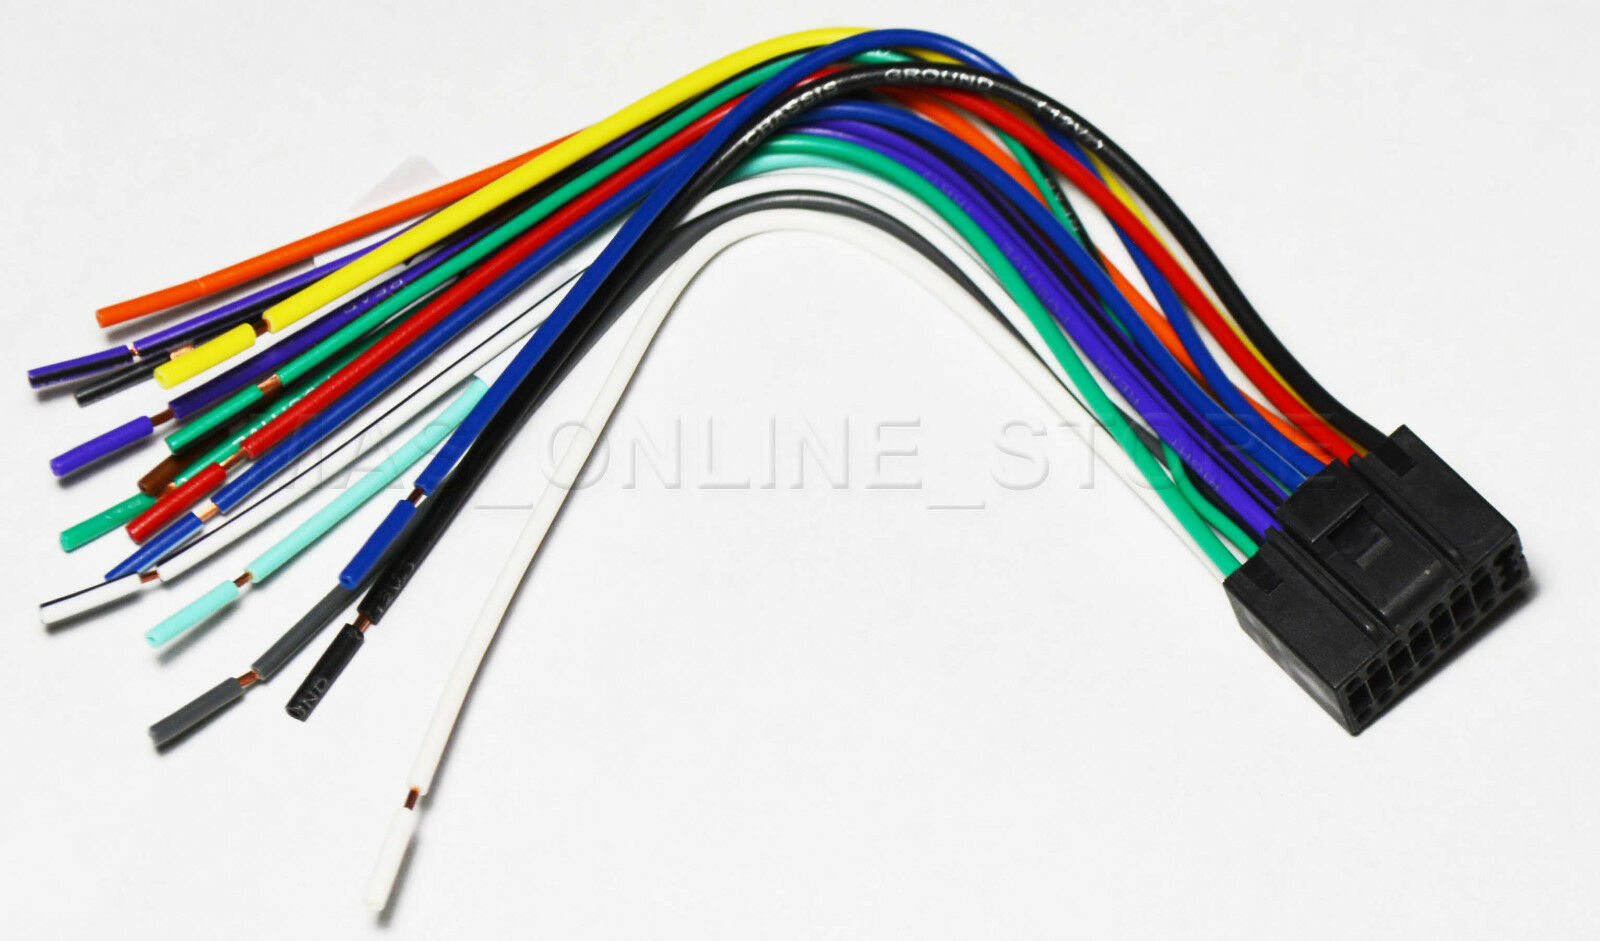 Jvc Kw Avx640 Wiring Diagram Free Download Kd R320 Harness Wire For Kwavx640 Pay Today Ships Ebay